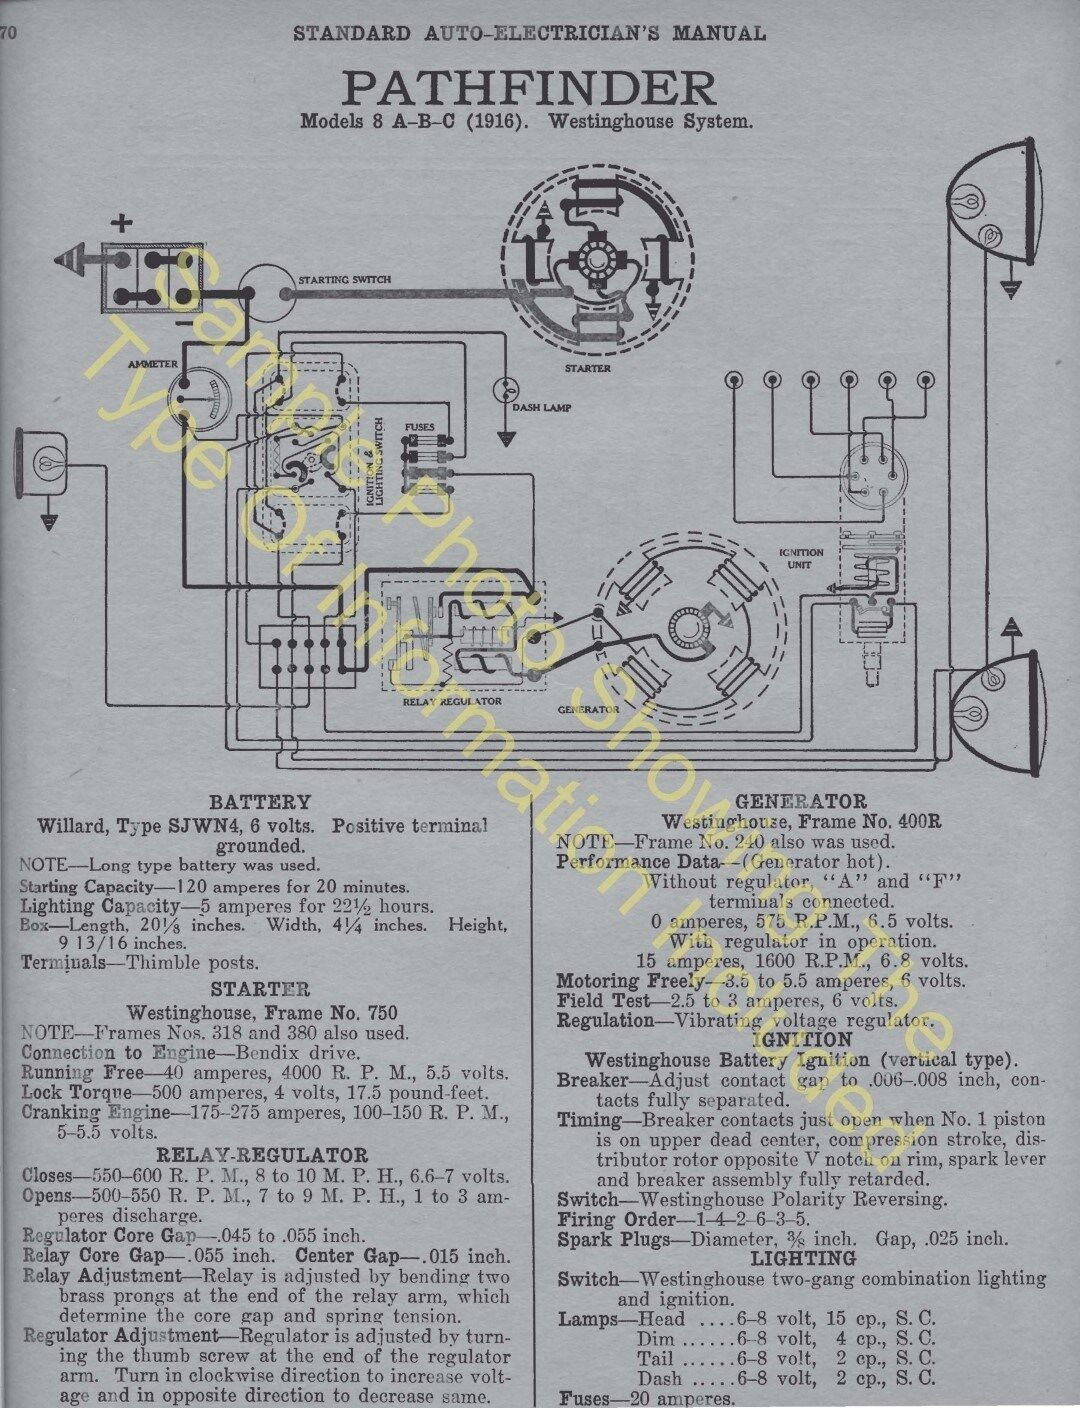 1941 Nash Wiring Diagram Internal Diagrams Ford Car 1915 1917 Partin Palmer Electric System Specs 383 1939 1 Of 1only